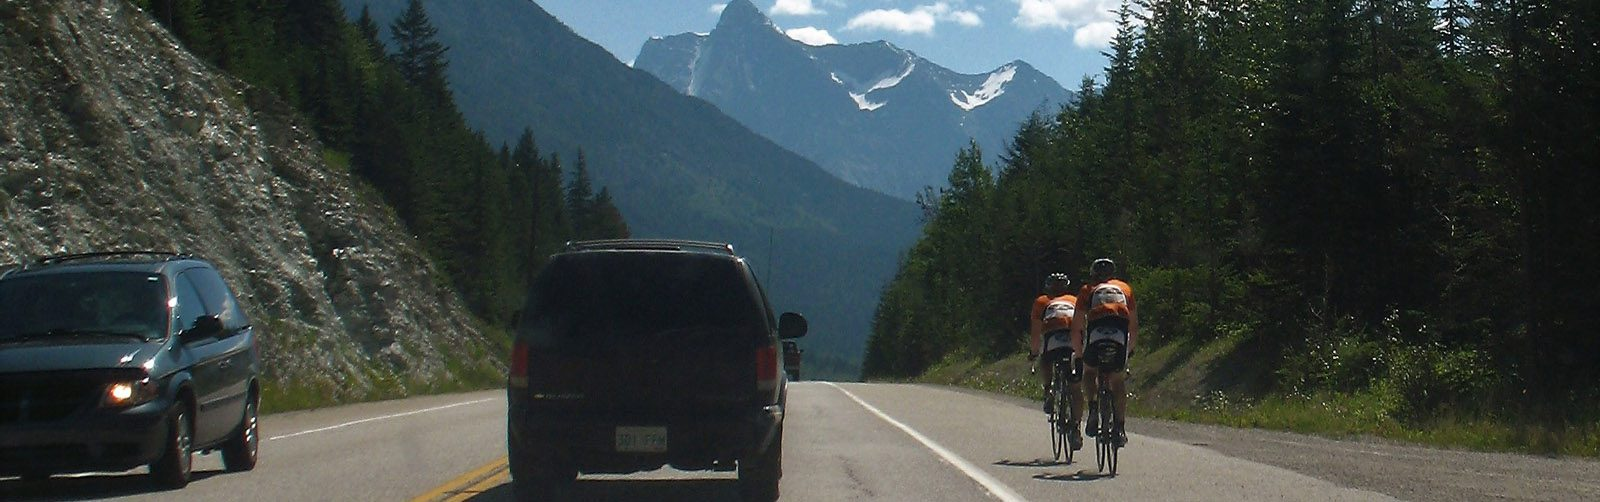 Cyclists - Golden - Kicking Horse Valley -sliver